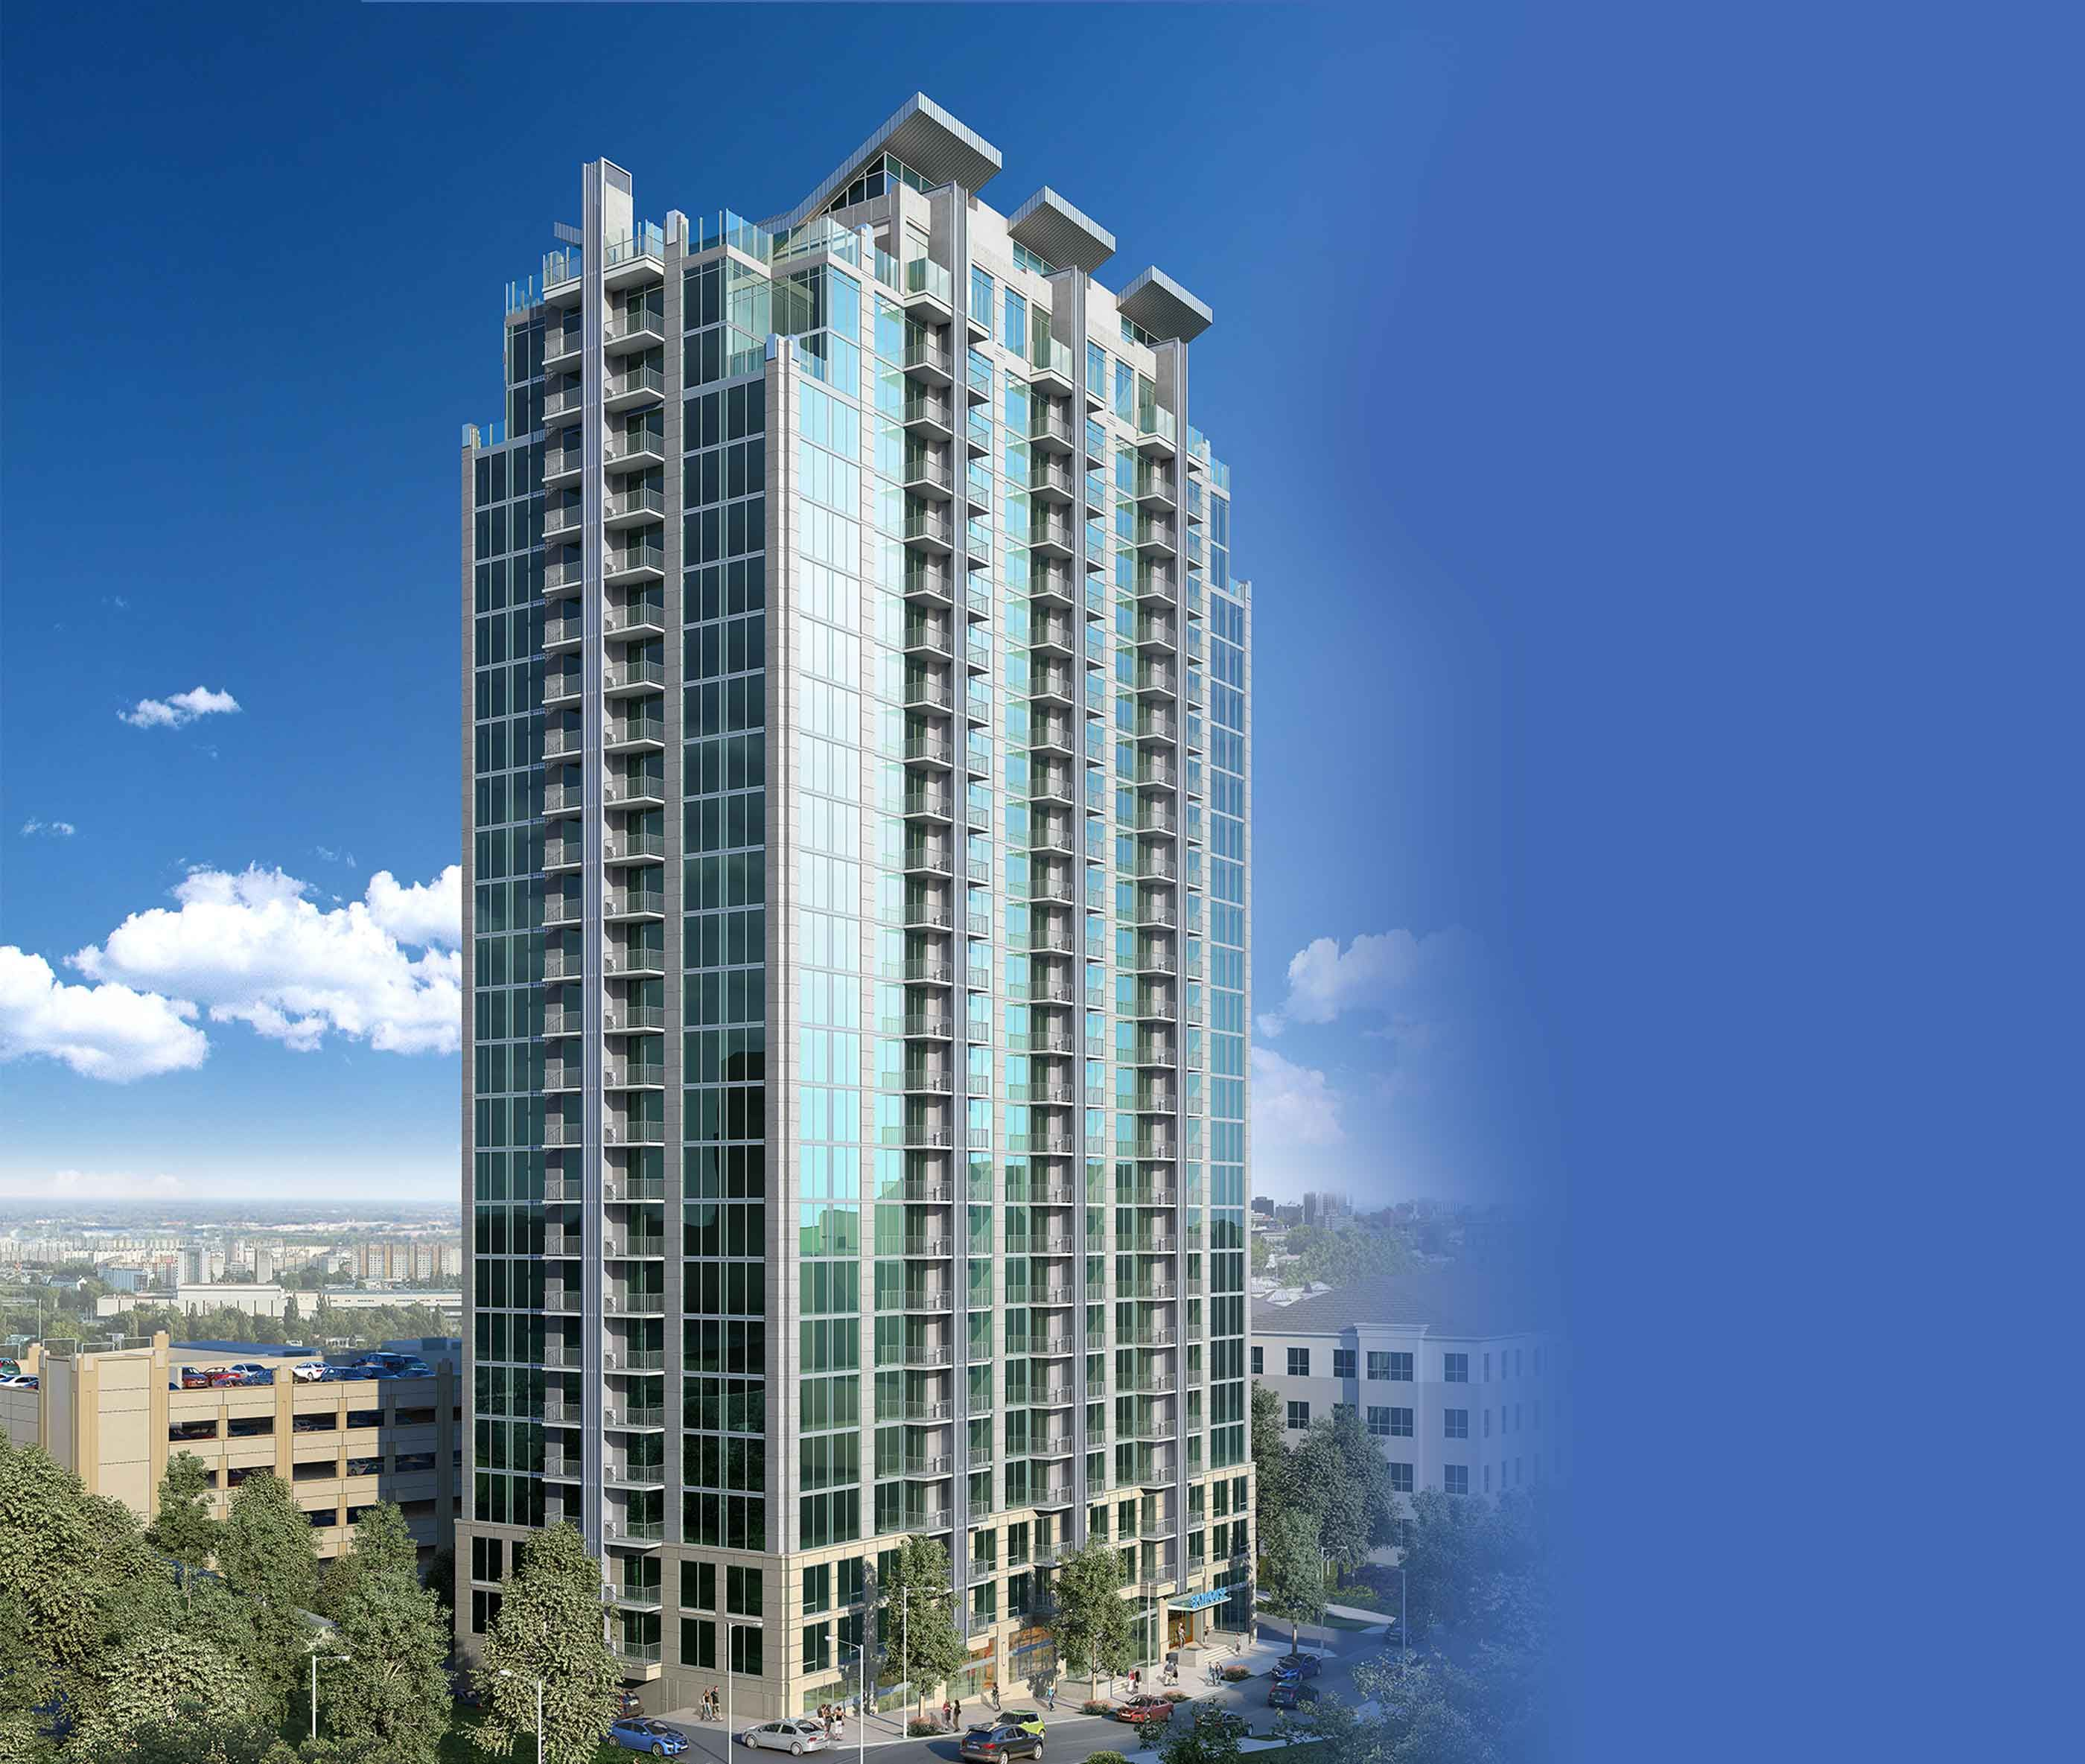 Skyhouse buckhead | Buckhead Buildings | High rise ...